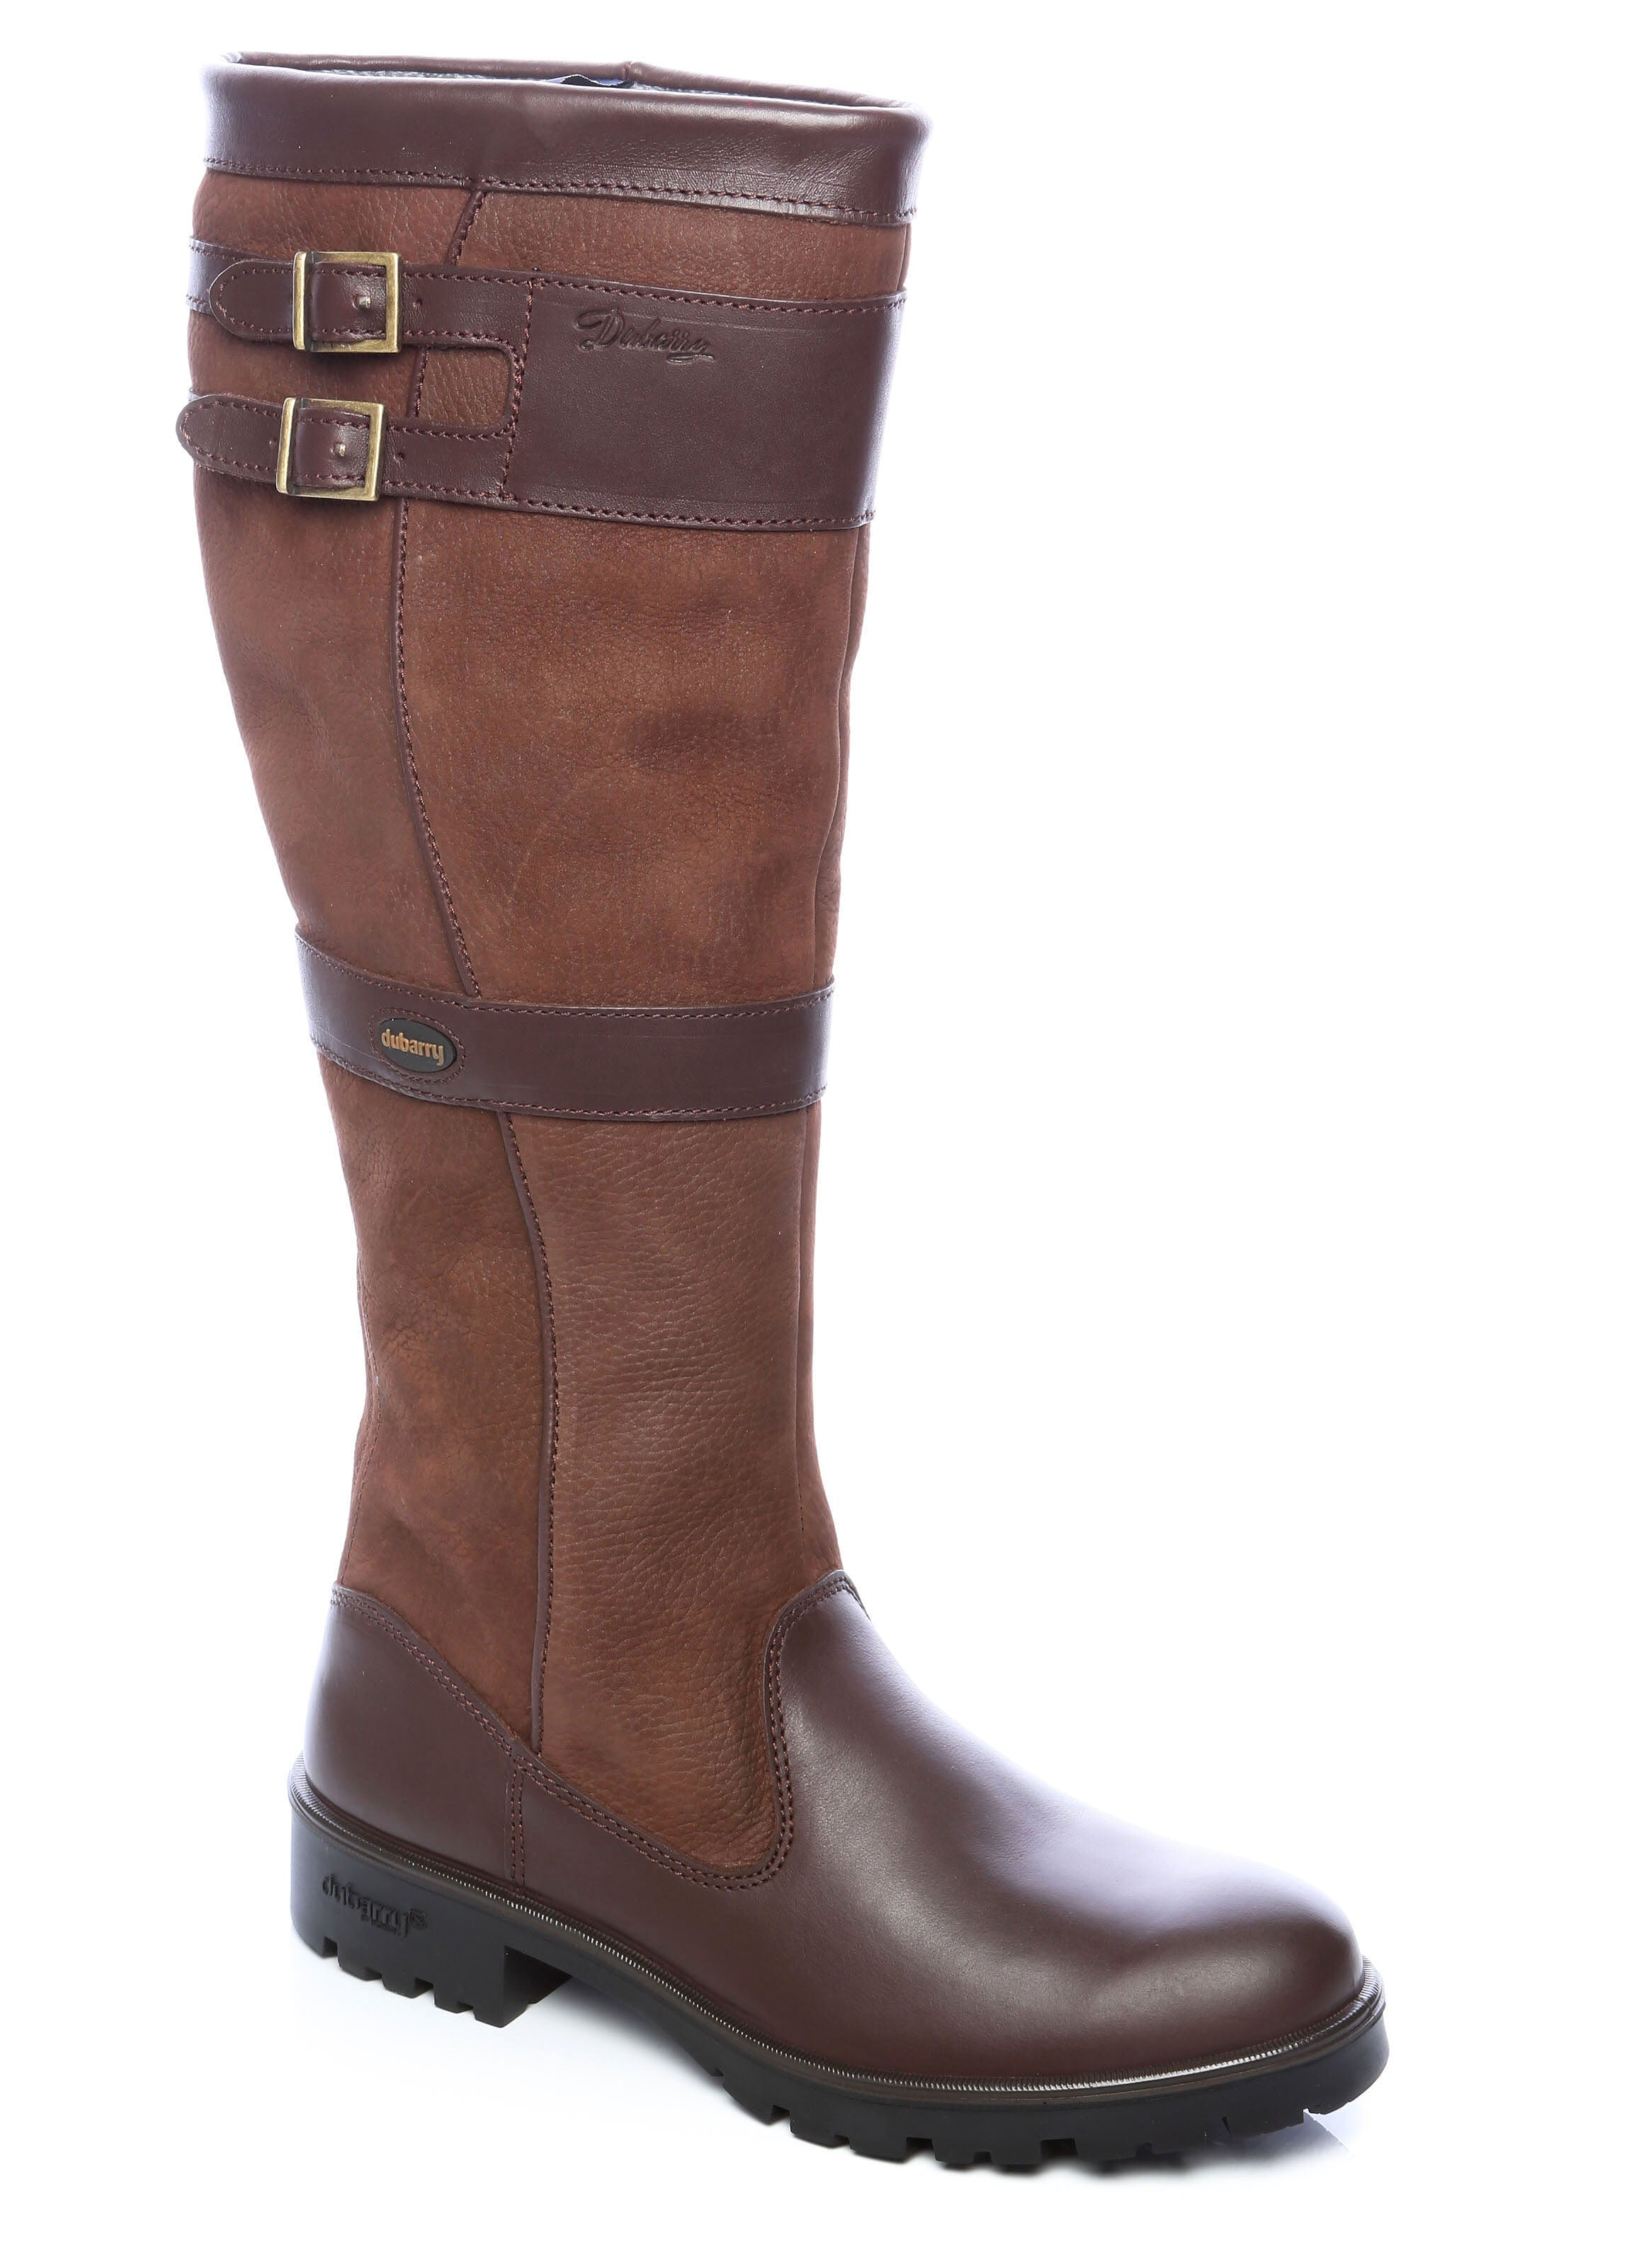 Dubarry Longford Leather Boot for Ladies in Walnut